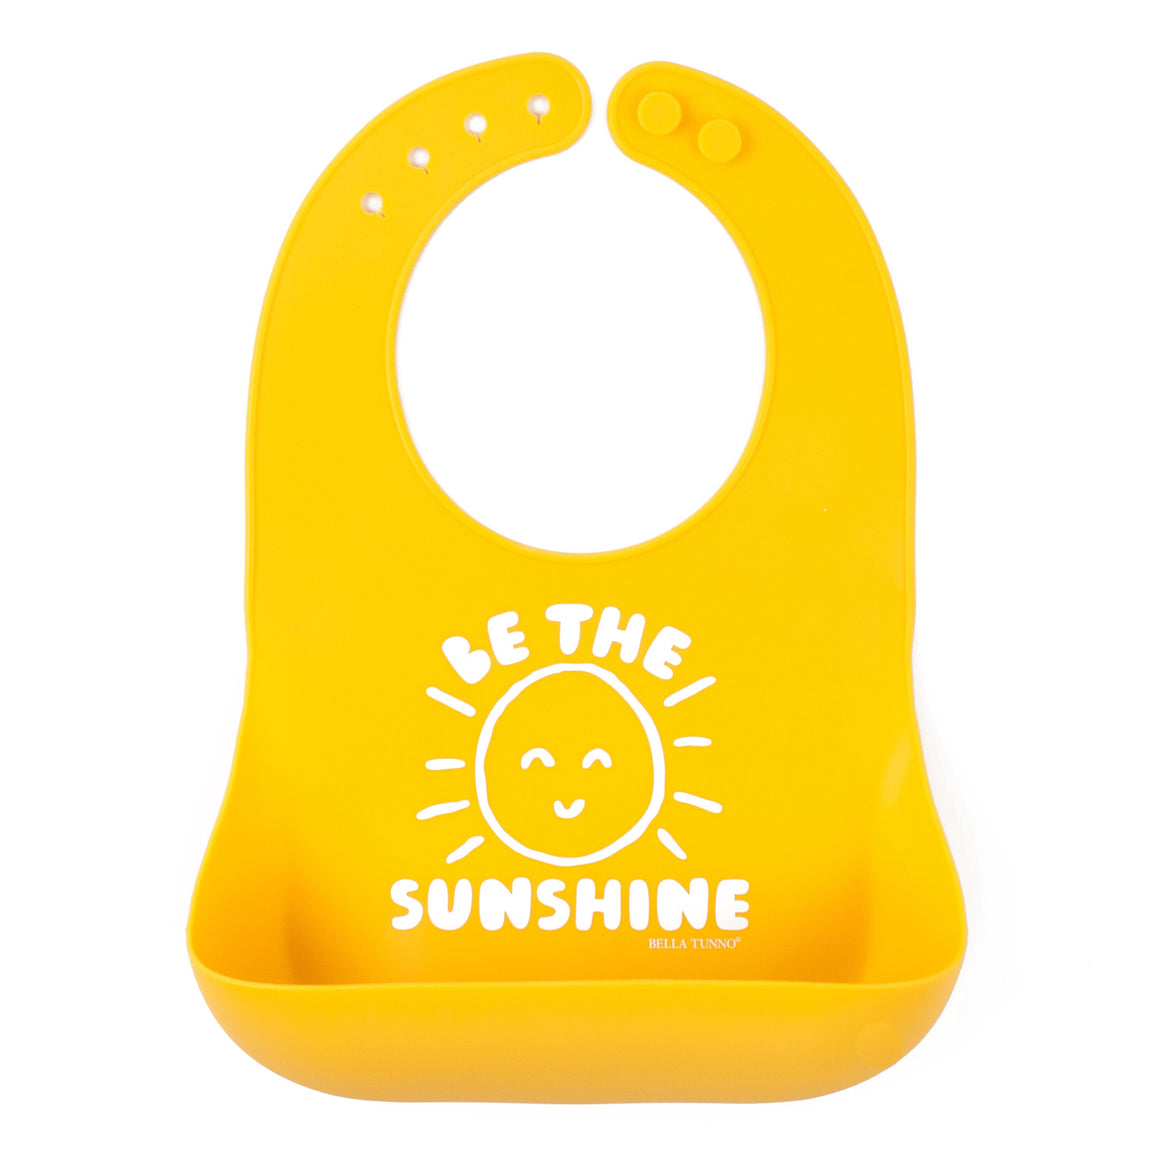 100% FDA Approved Food Grade Silicone Wonder Baby Bib with Be the Sunshine graphic in bright yellow